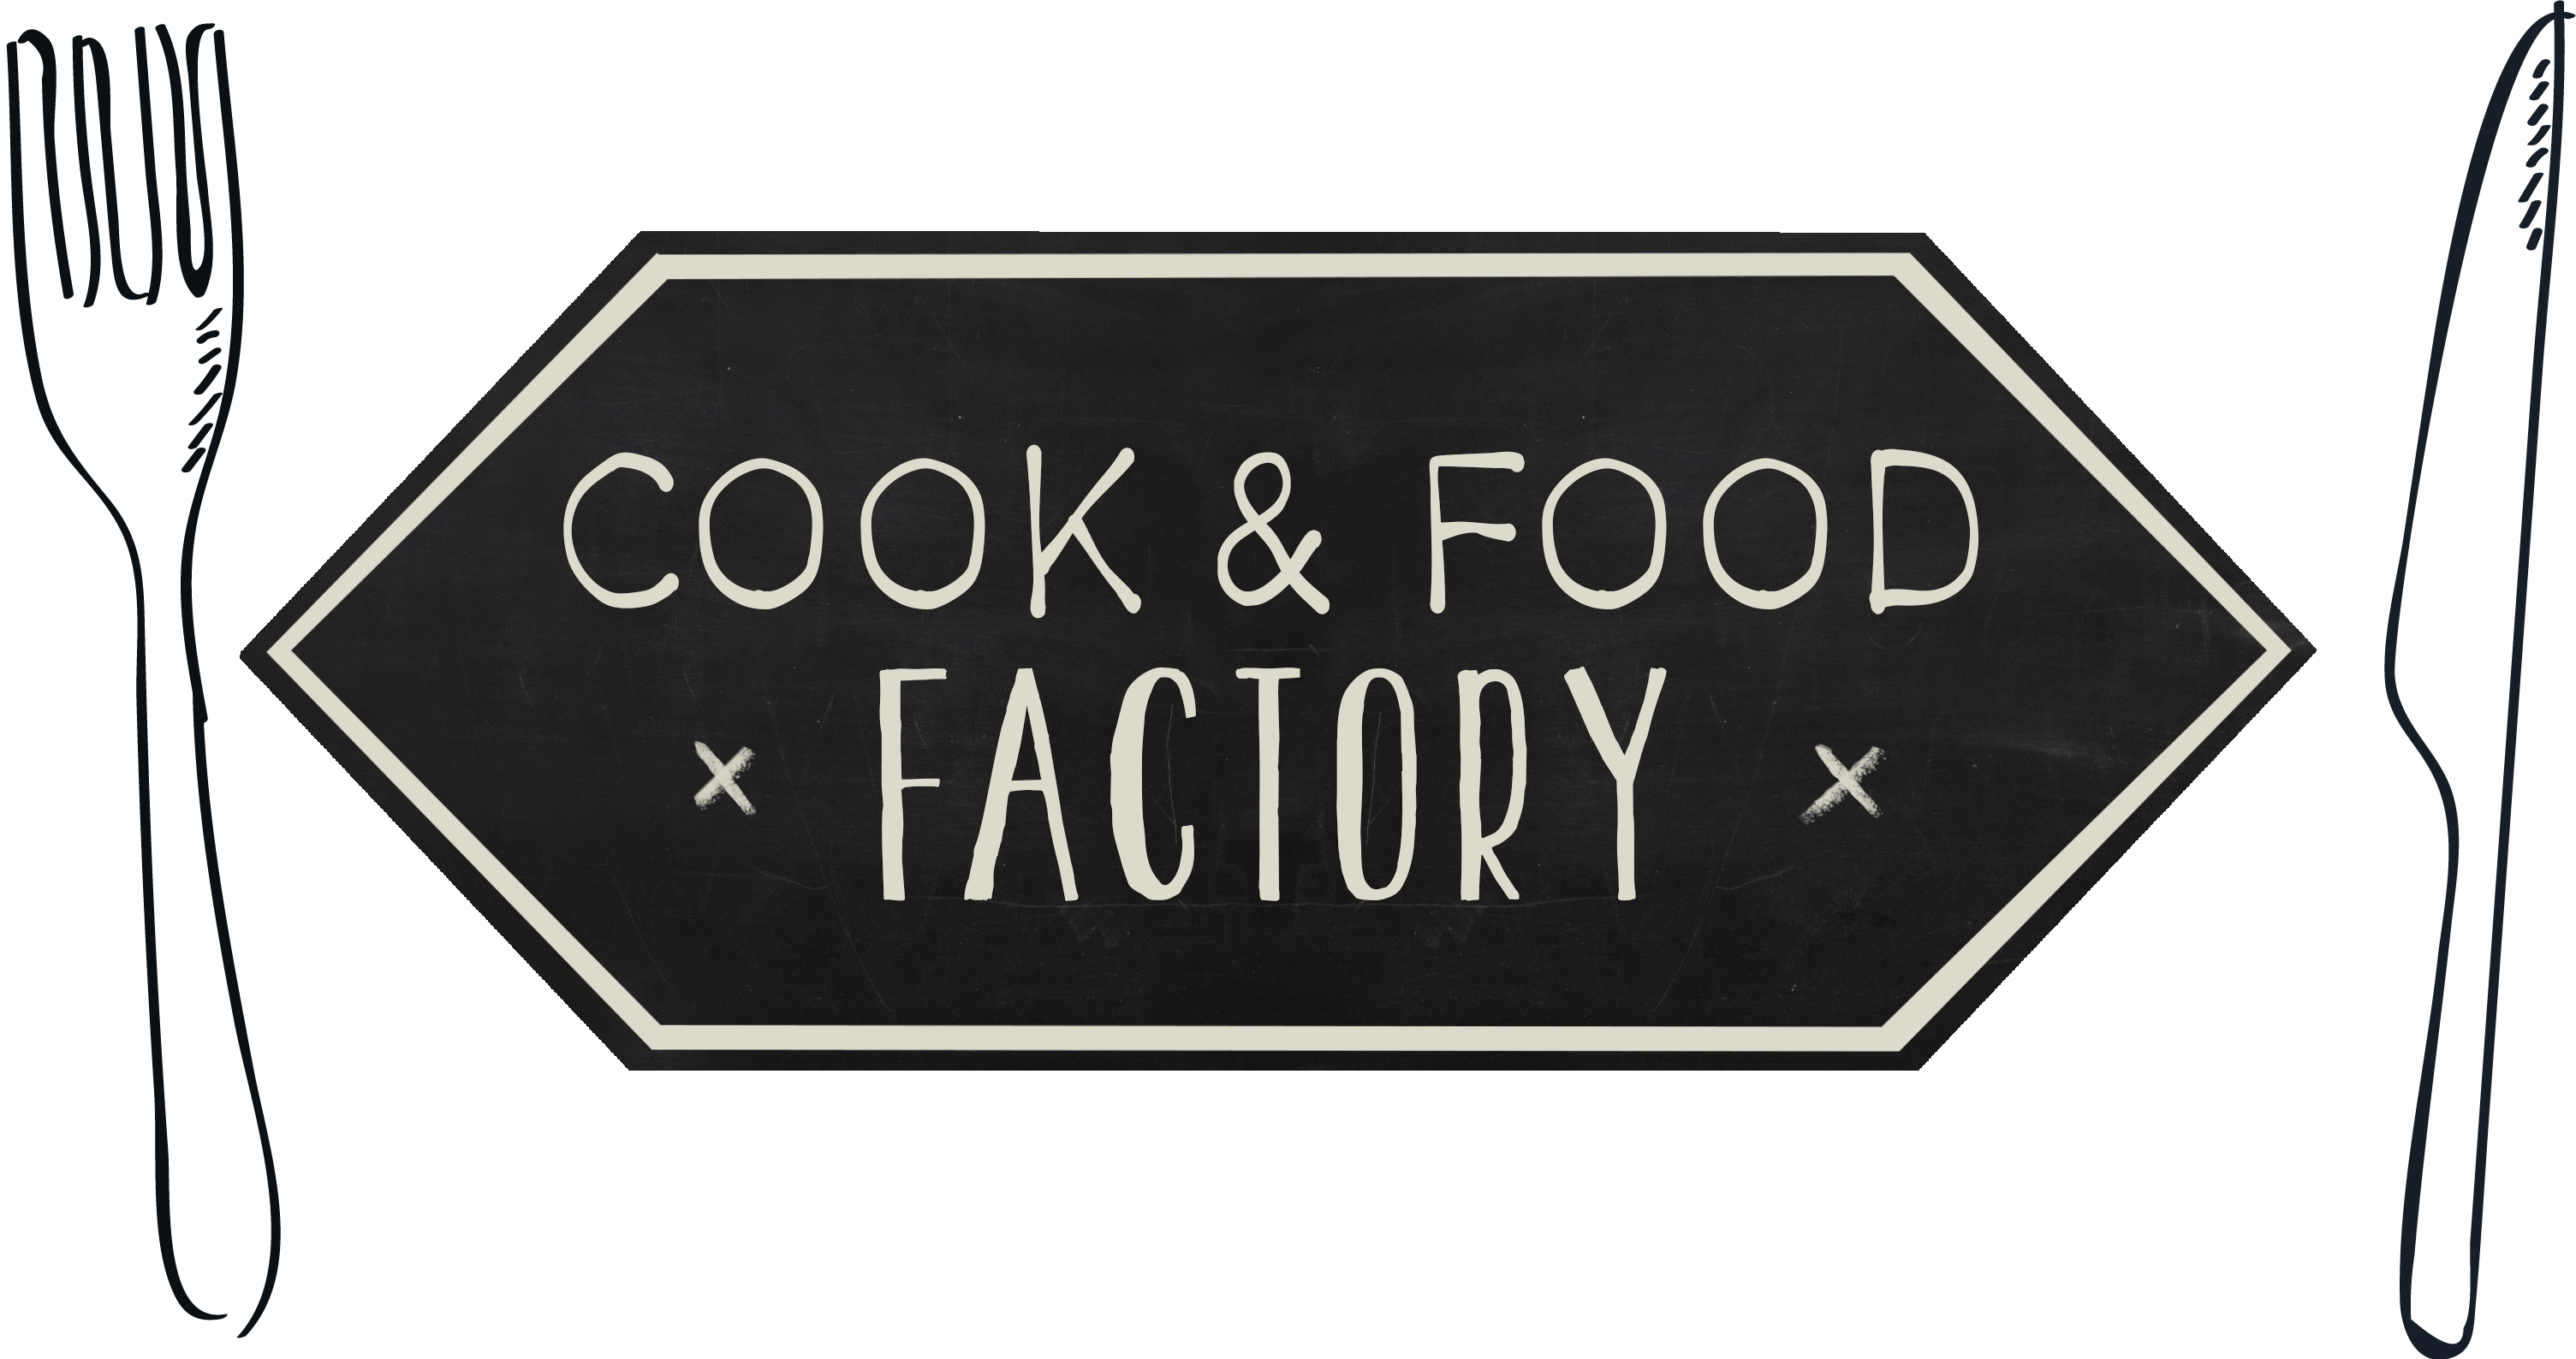 COOK AND FOOD FACTORY